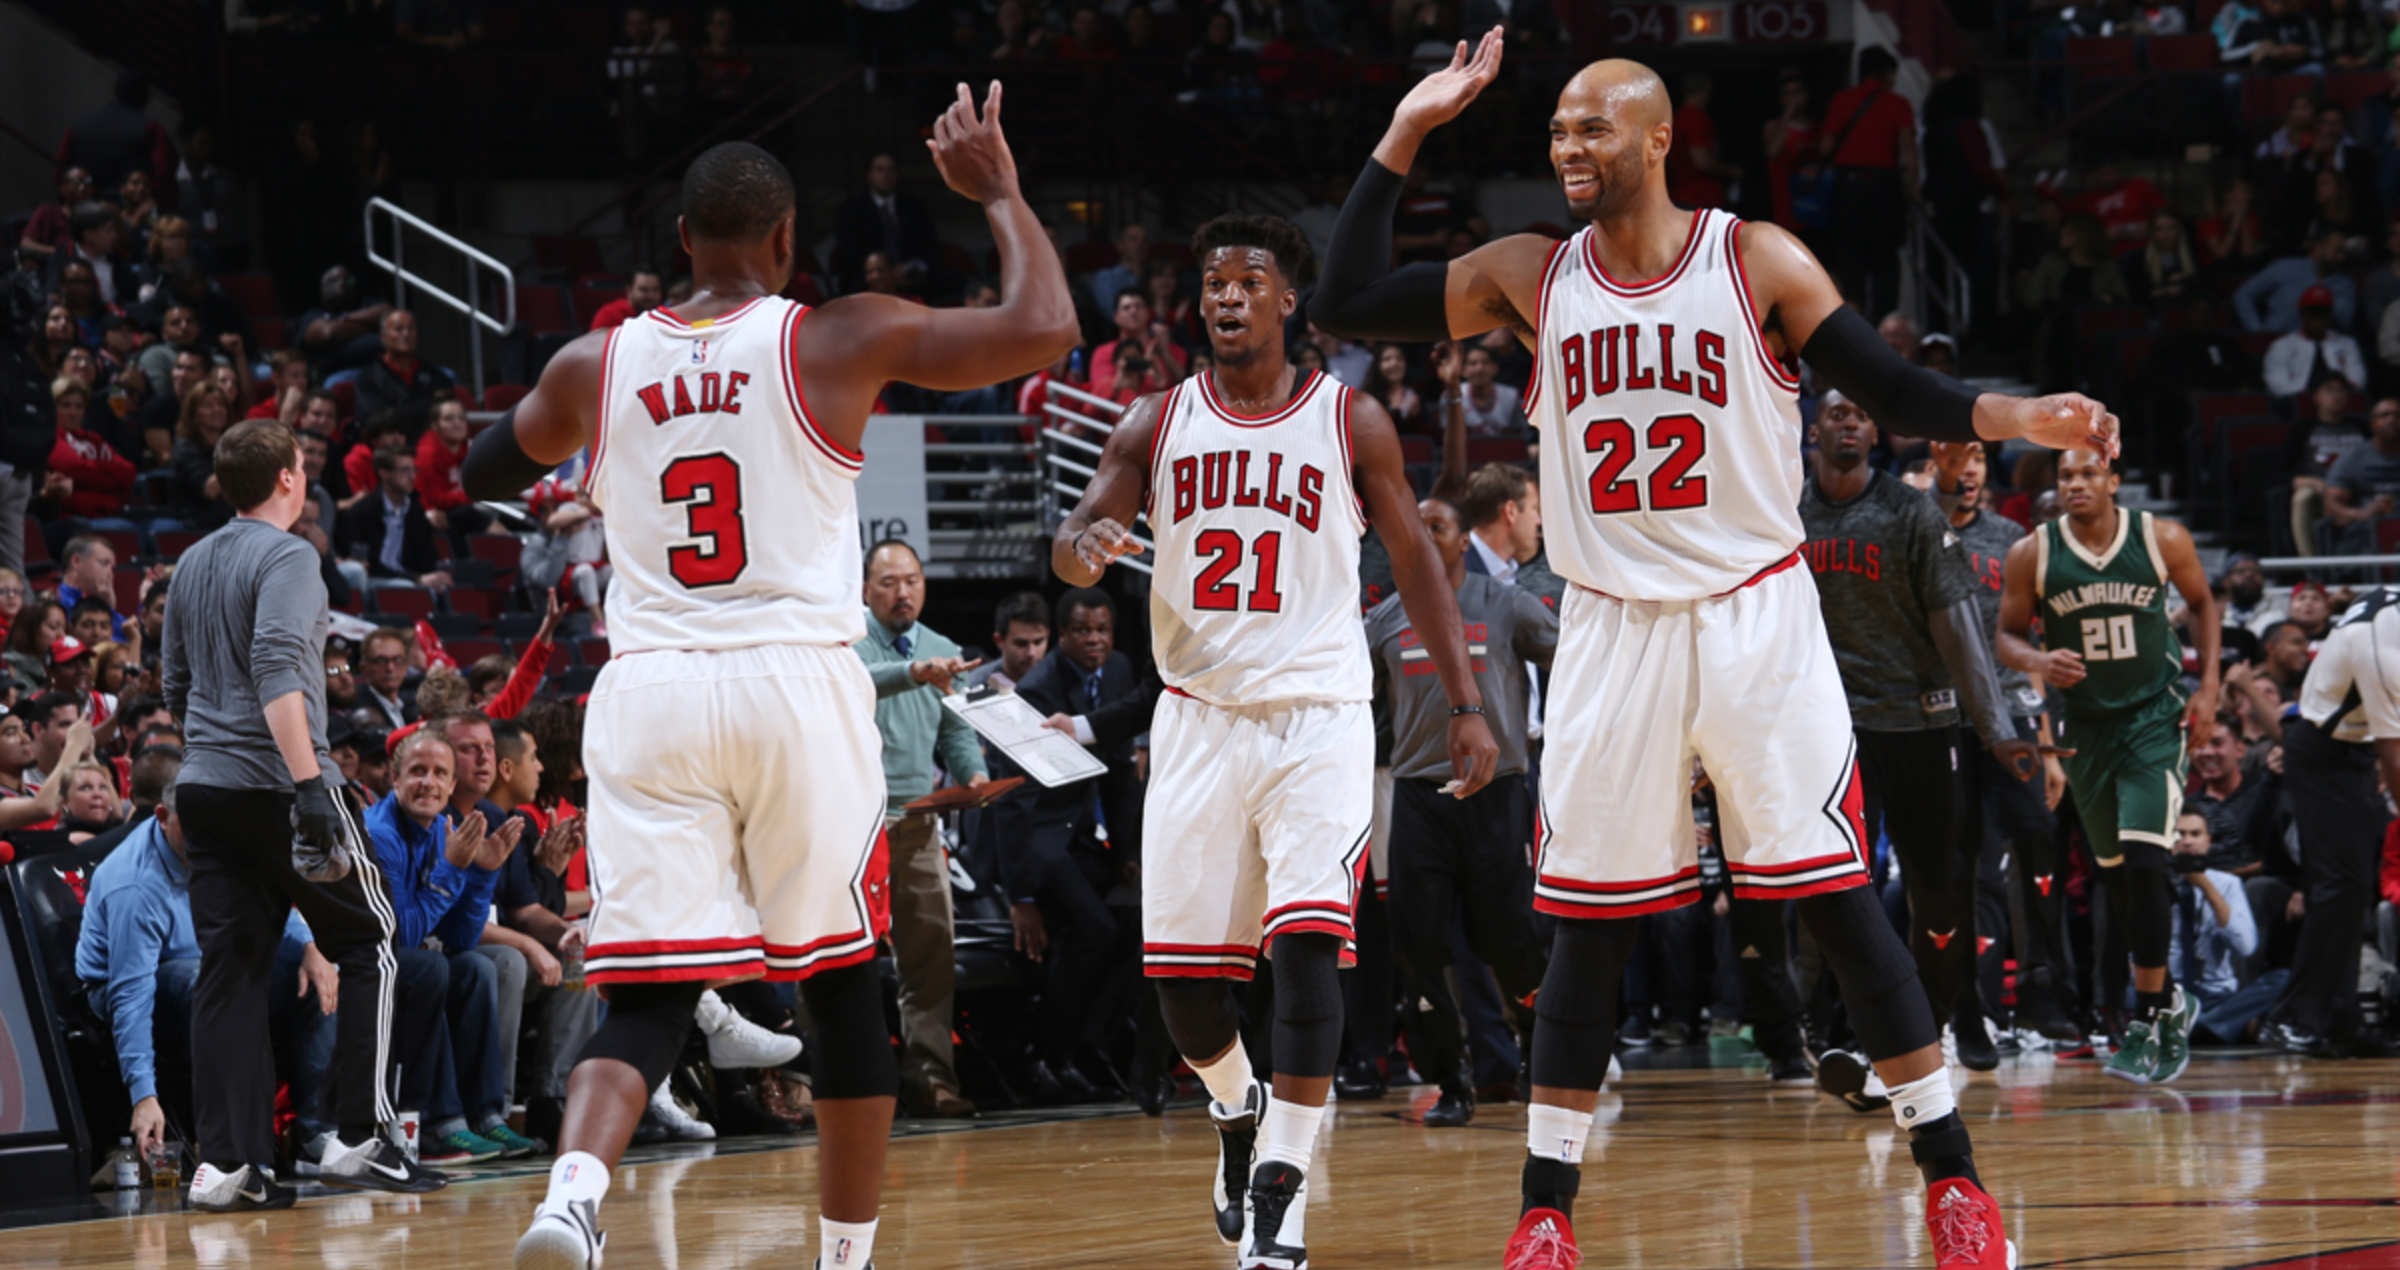 Dwyane Wade, Jimmy Butler, and Taj Gibson